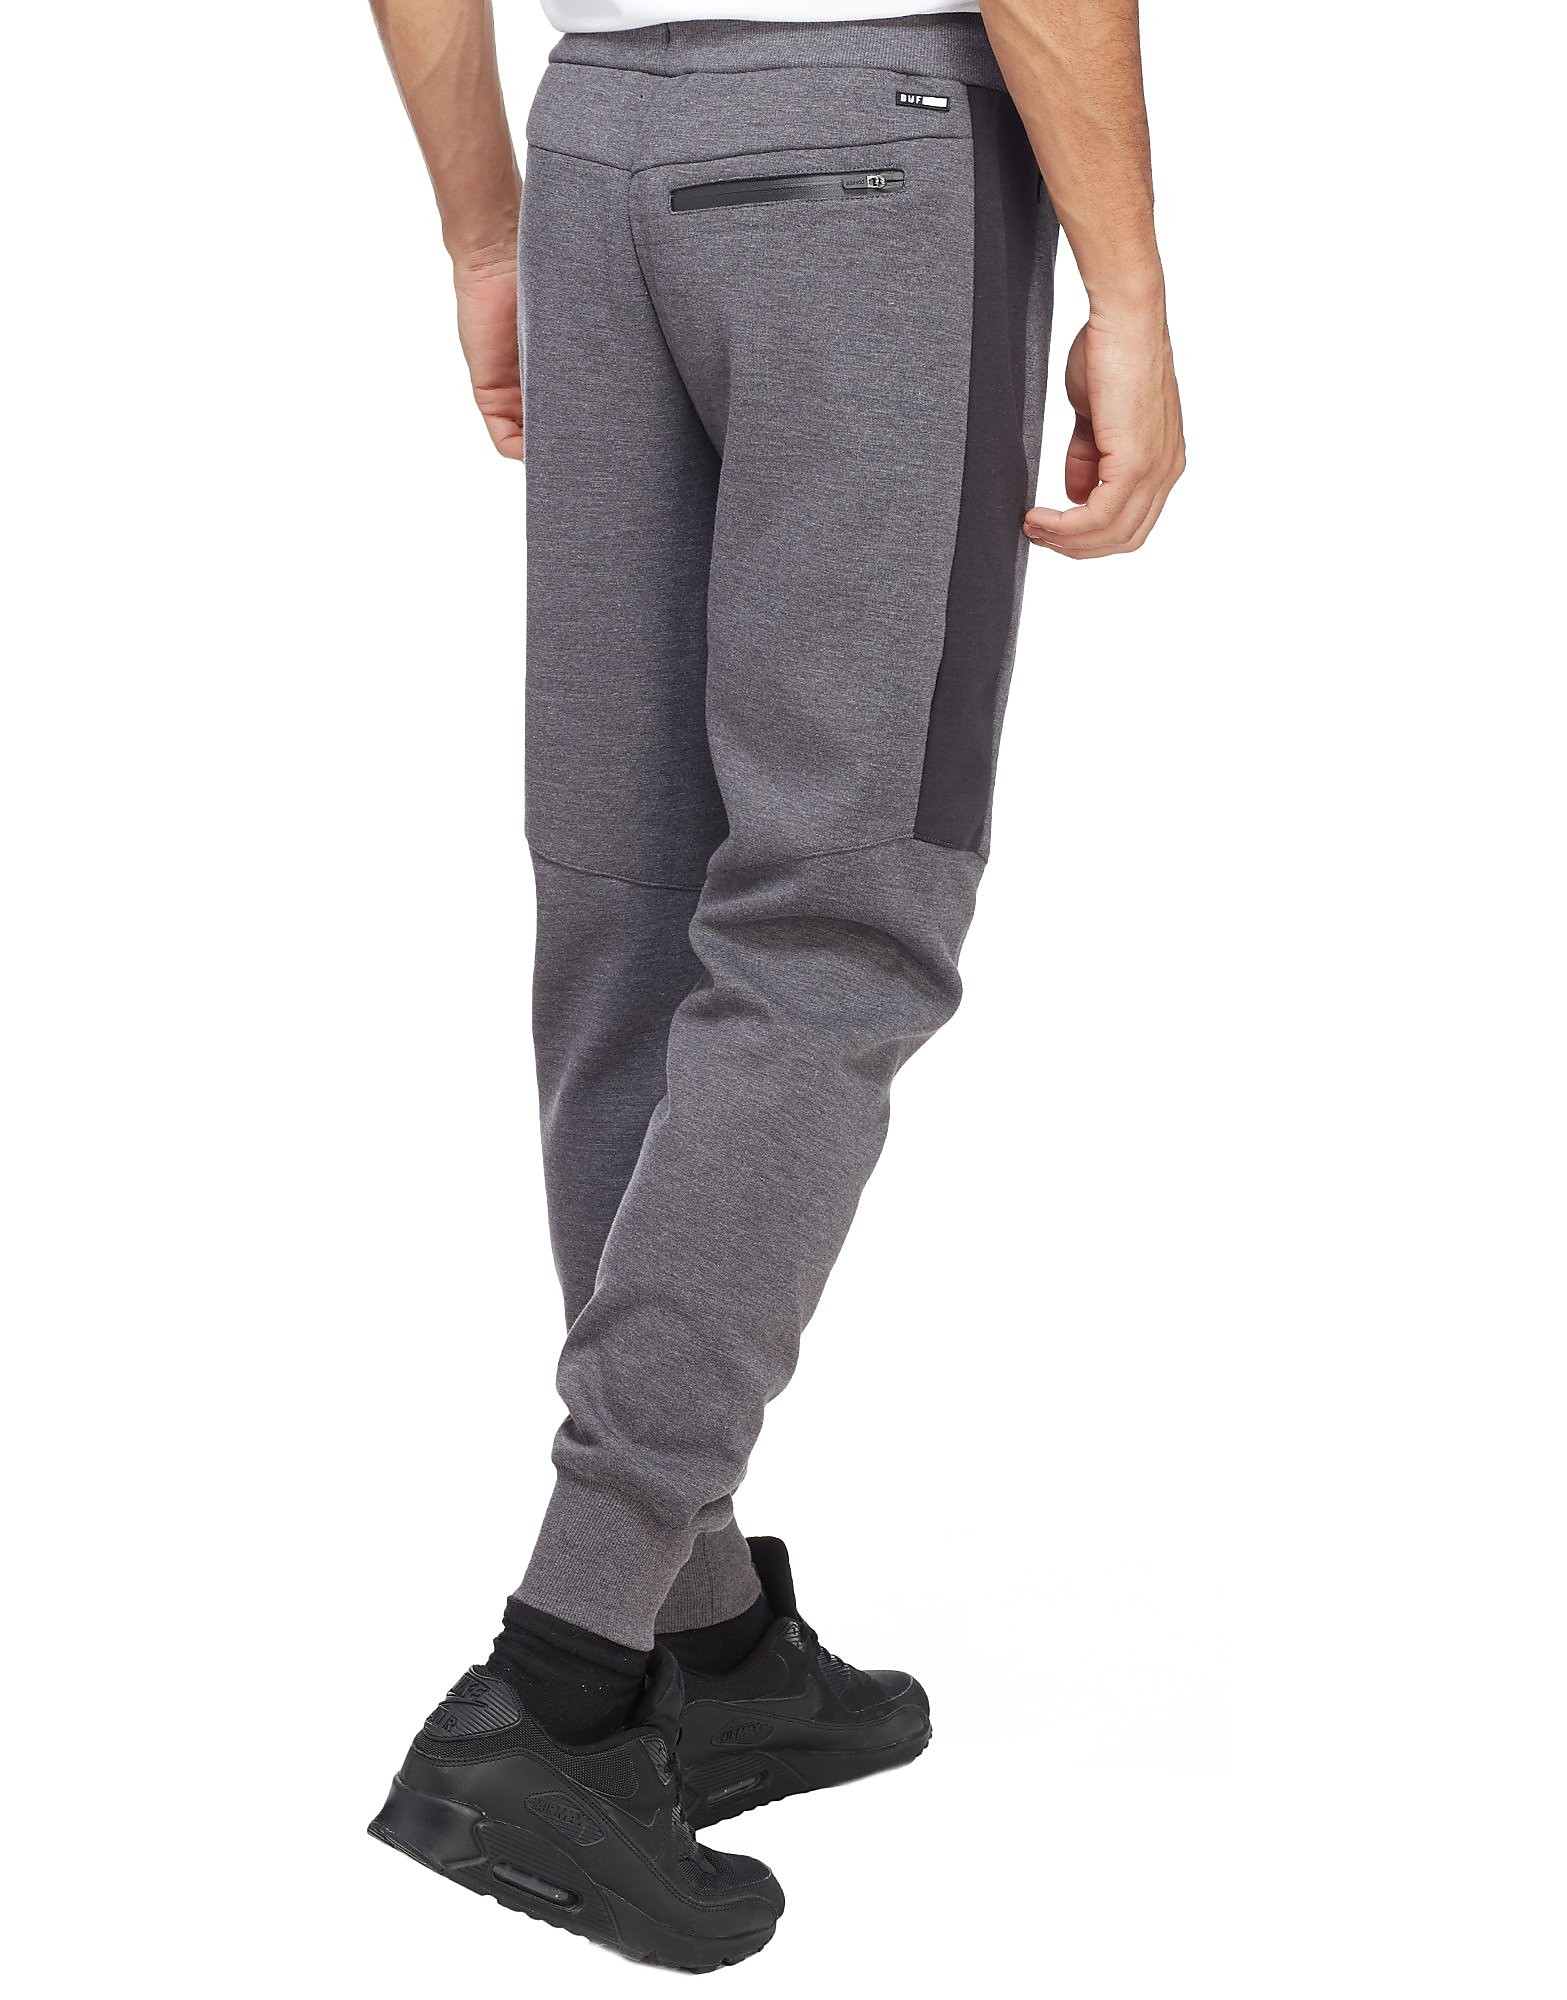 Duffer of St George System Jogging Pants